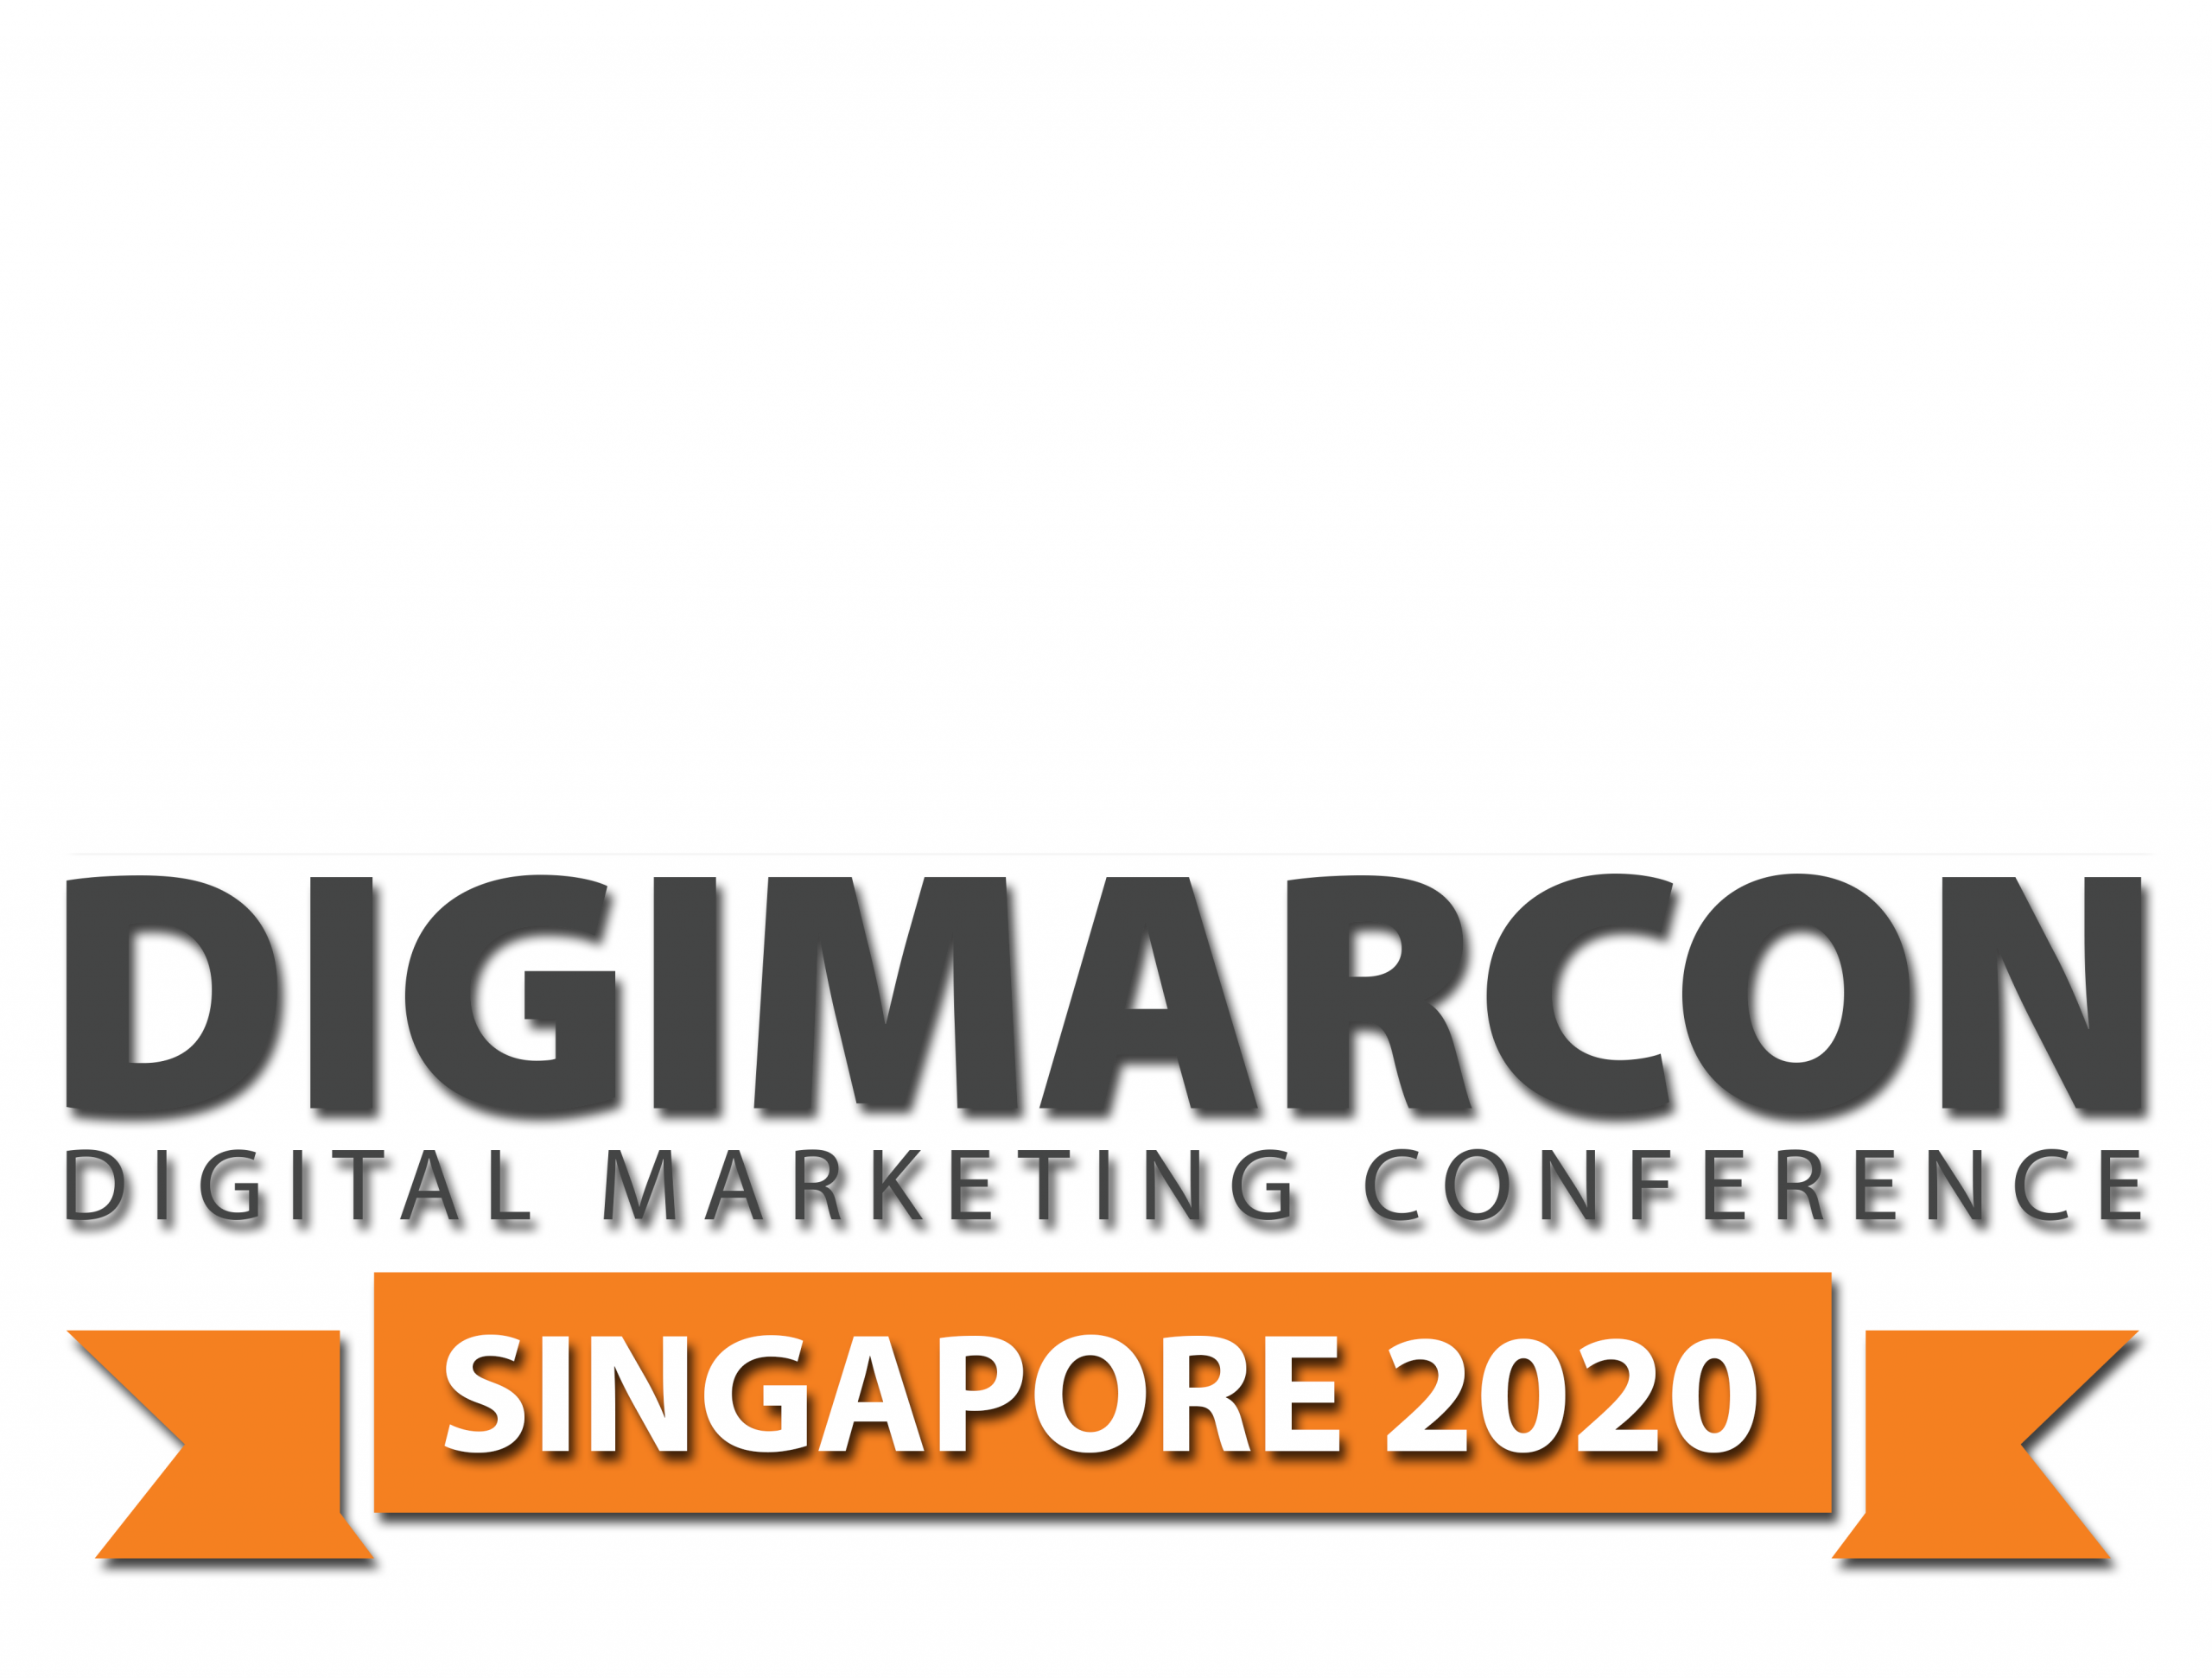 DigiMarCon Southeast Asia 2021 – Digital Marketing Conference & Exhibition